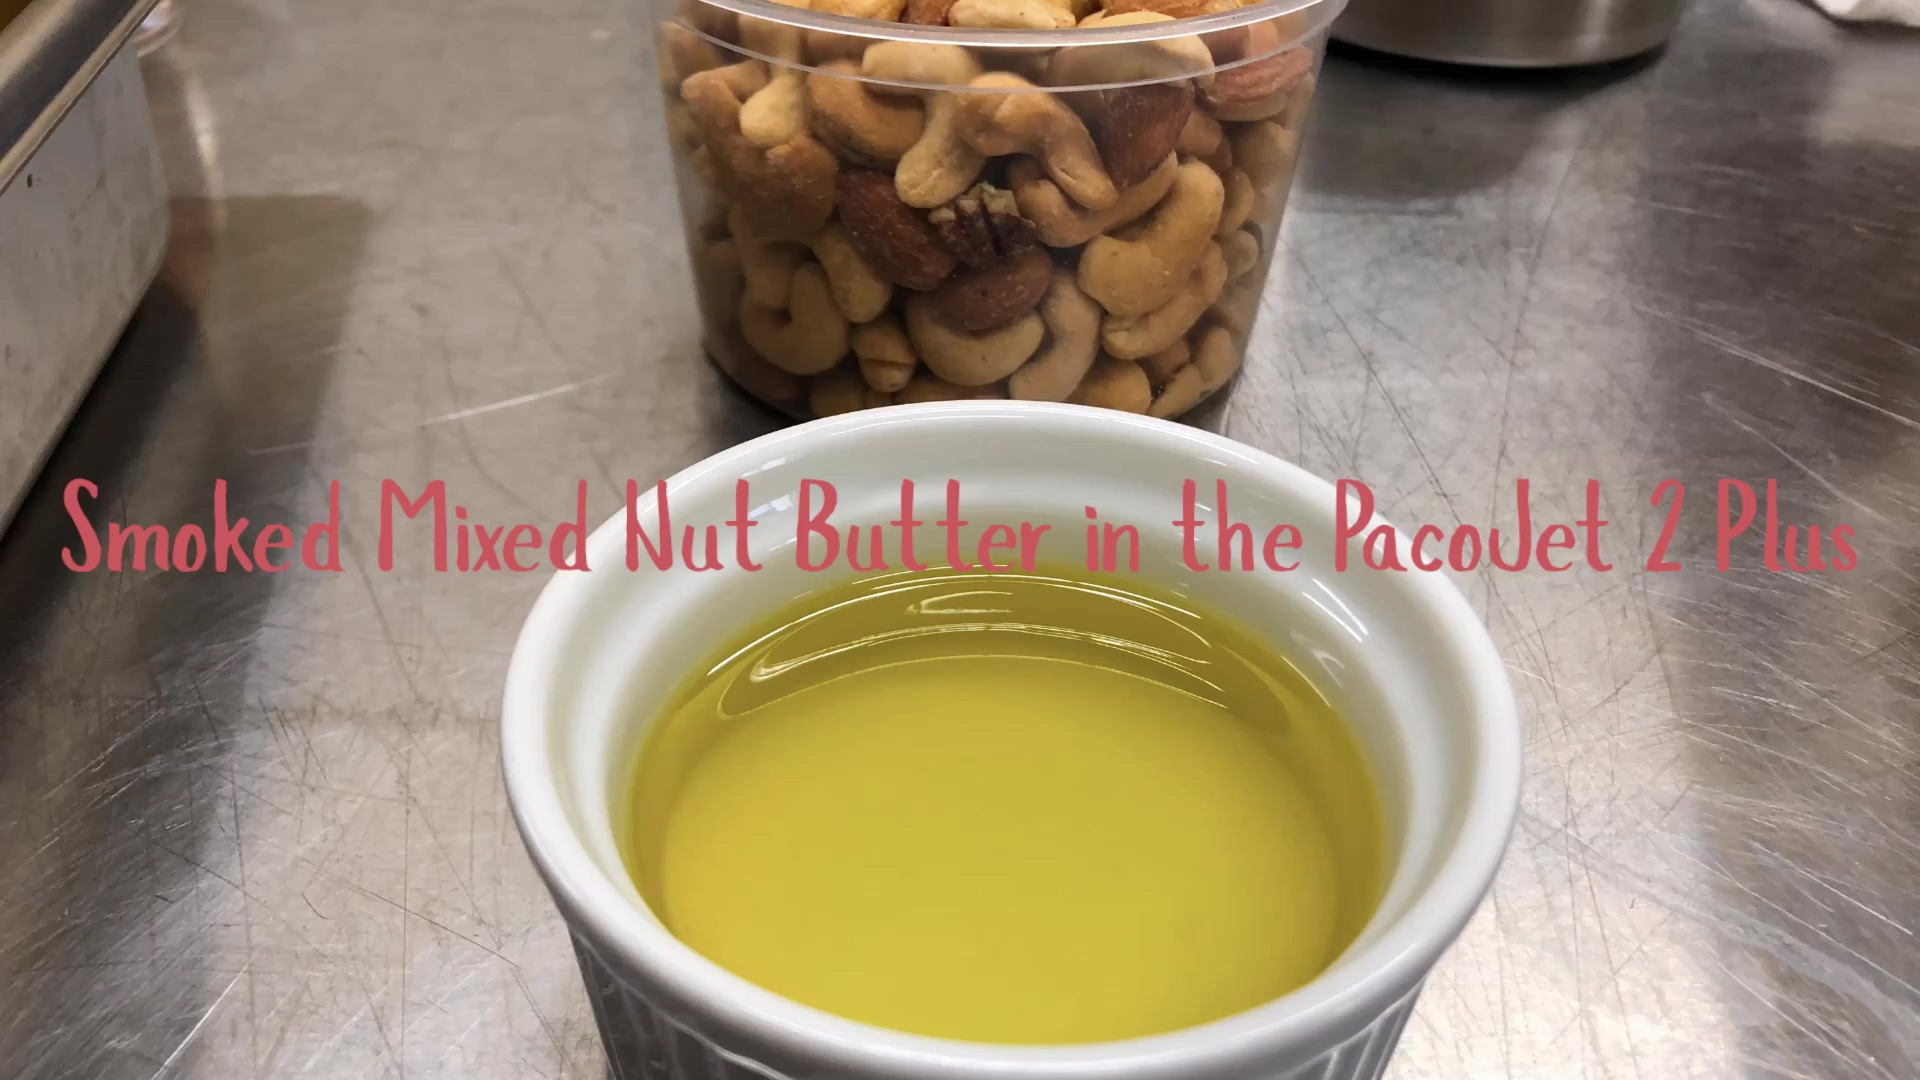 PacoJet Smoked Nut Butter